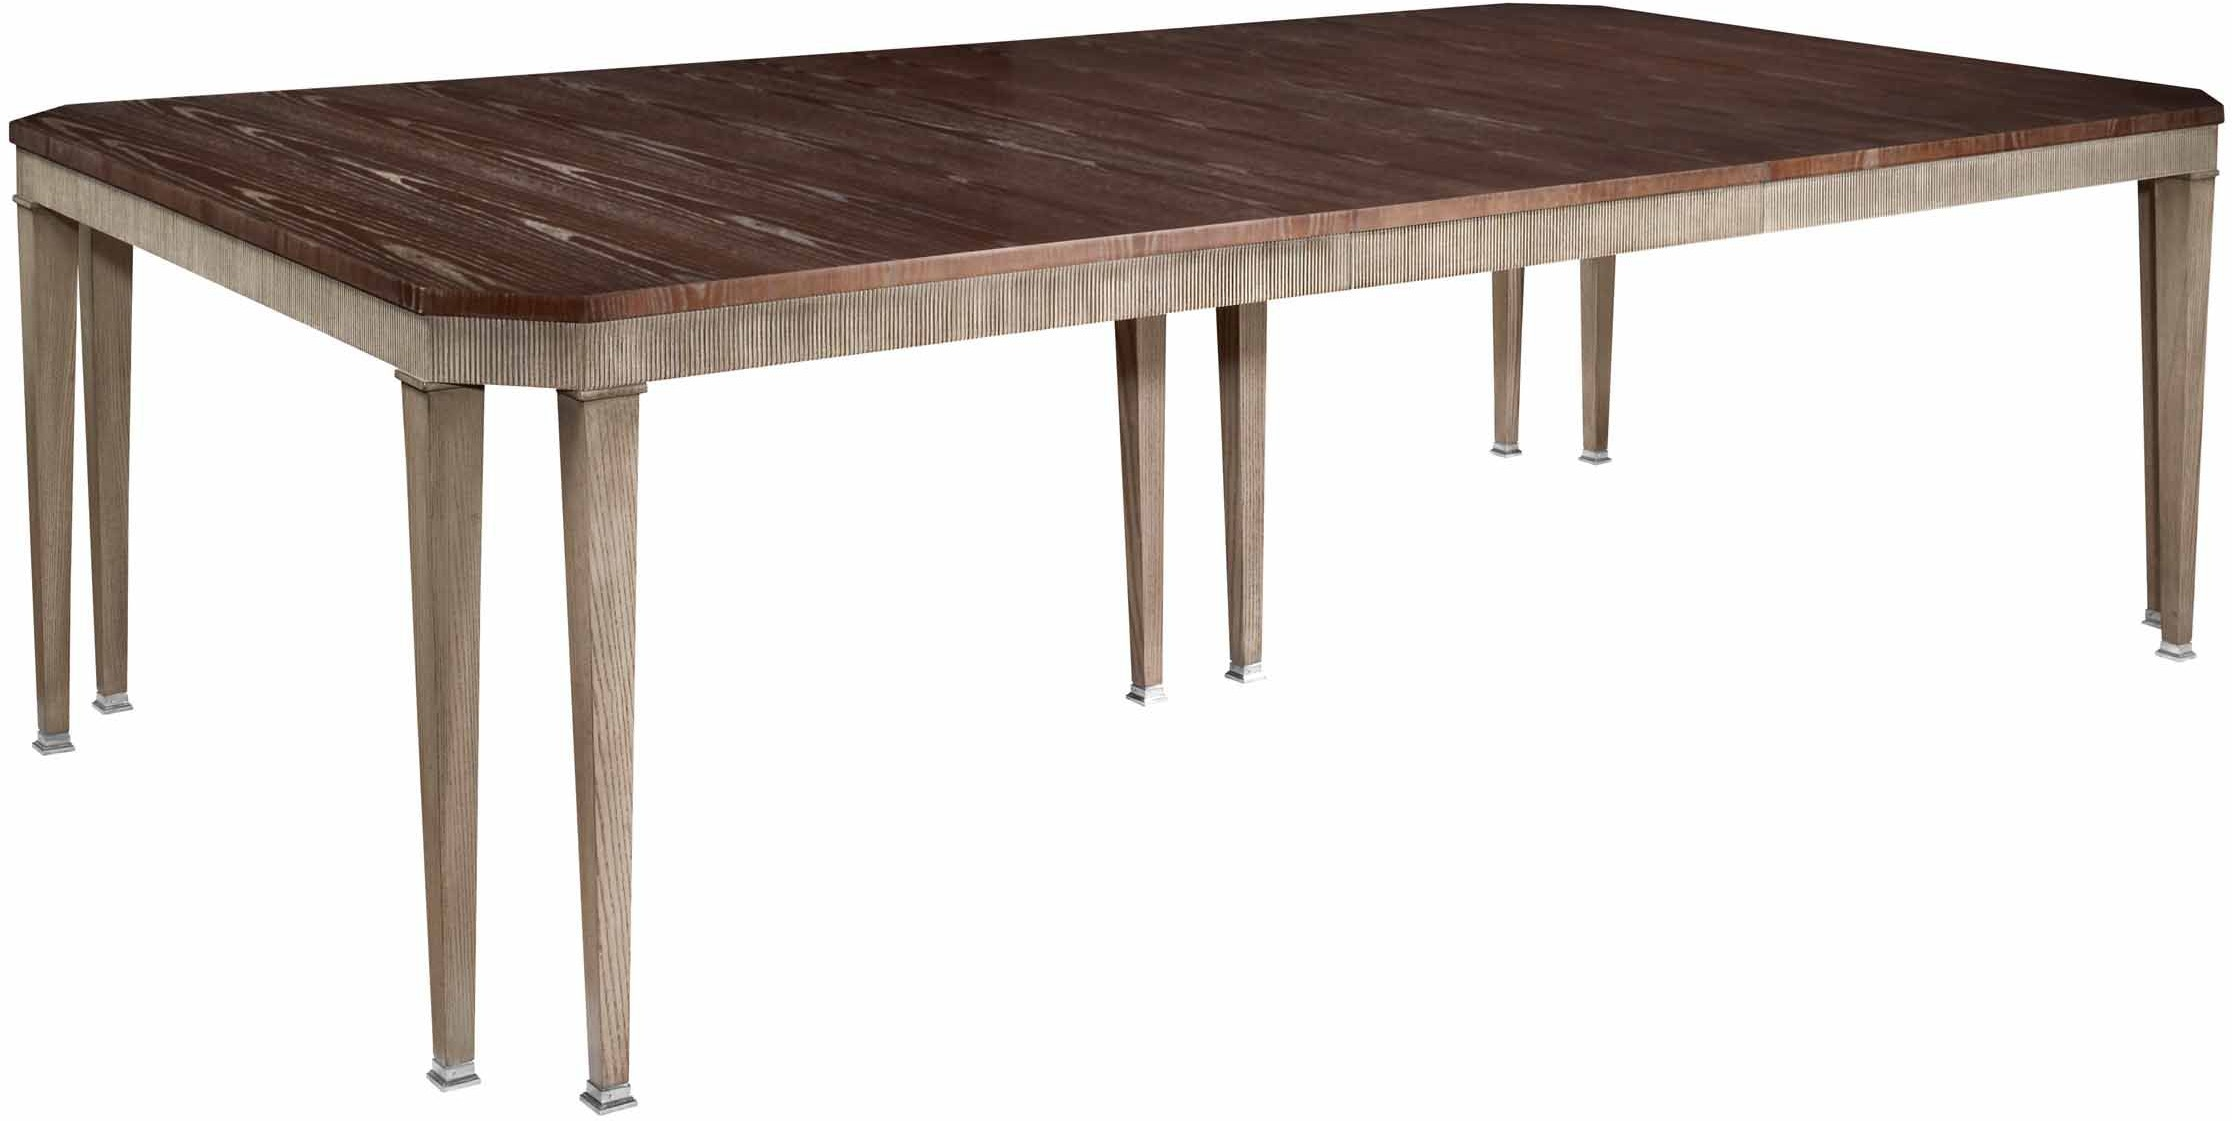 Astounding Hickory Chair Dining Room Artisan Chamfered Corner Dining Caraccident5 Cool Chair Designs And Ideas Caraccident5Info